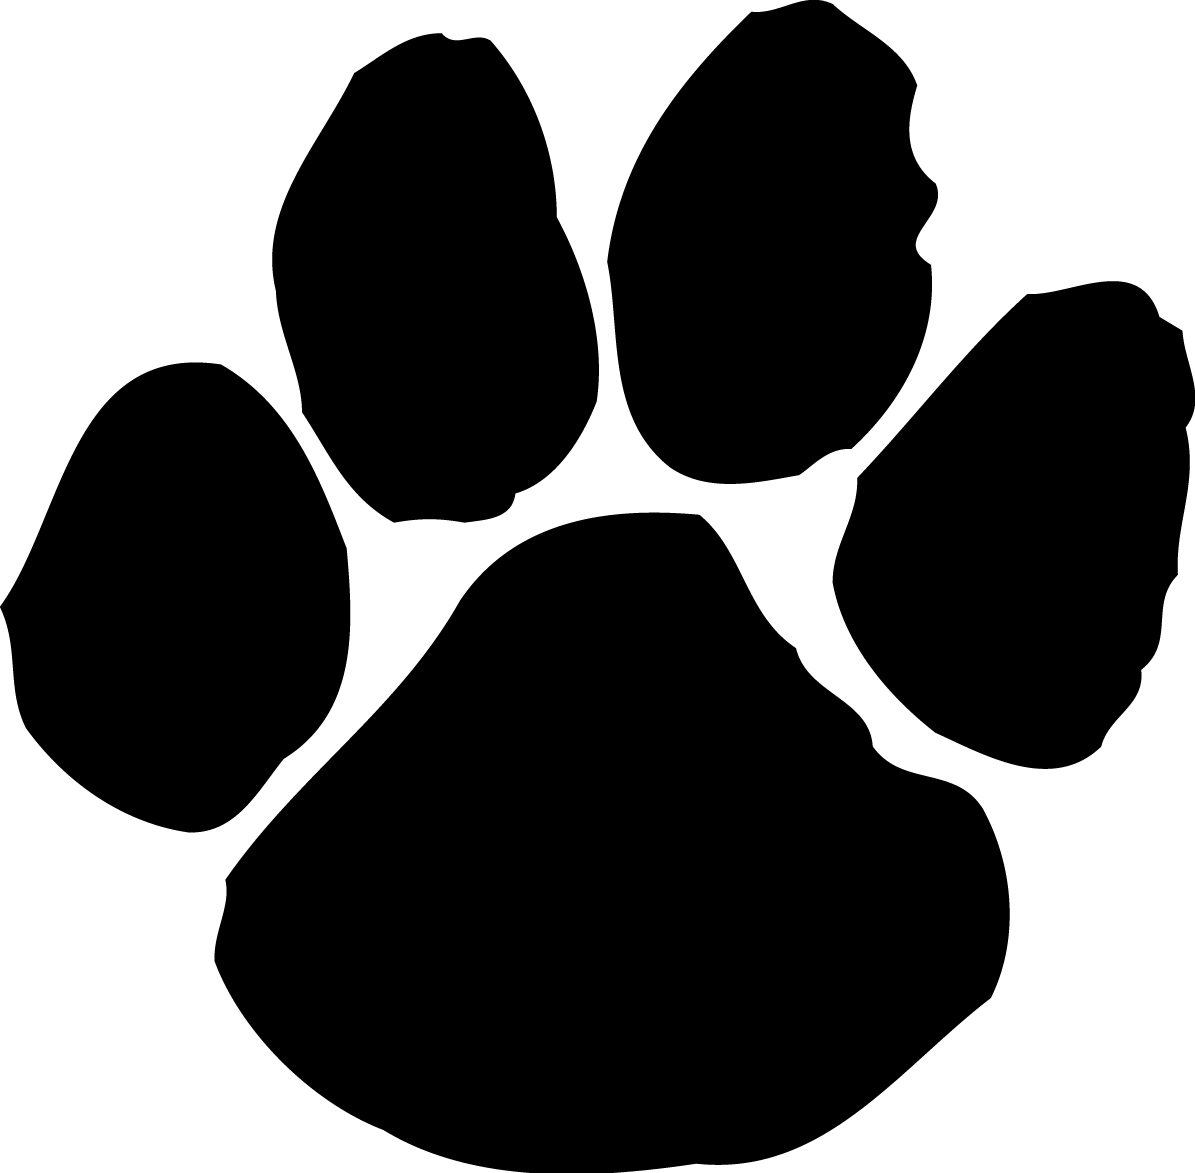 3 panther paws clipart image transparent library Panther Paws Clipart | Free download best Panther Paws Clipart on ... image transparent library